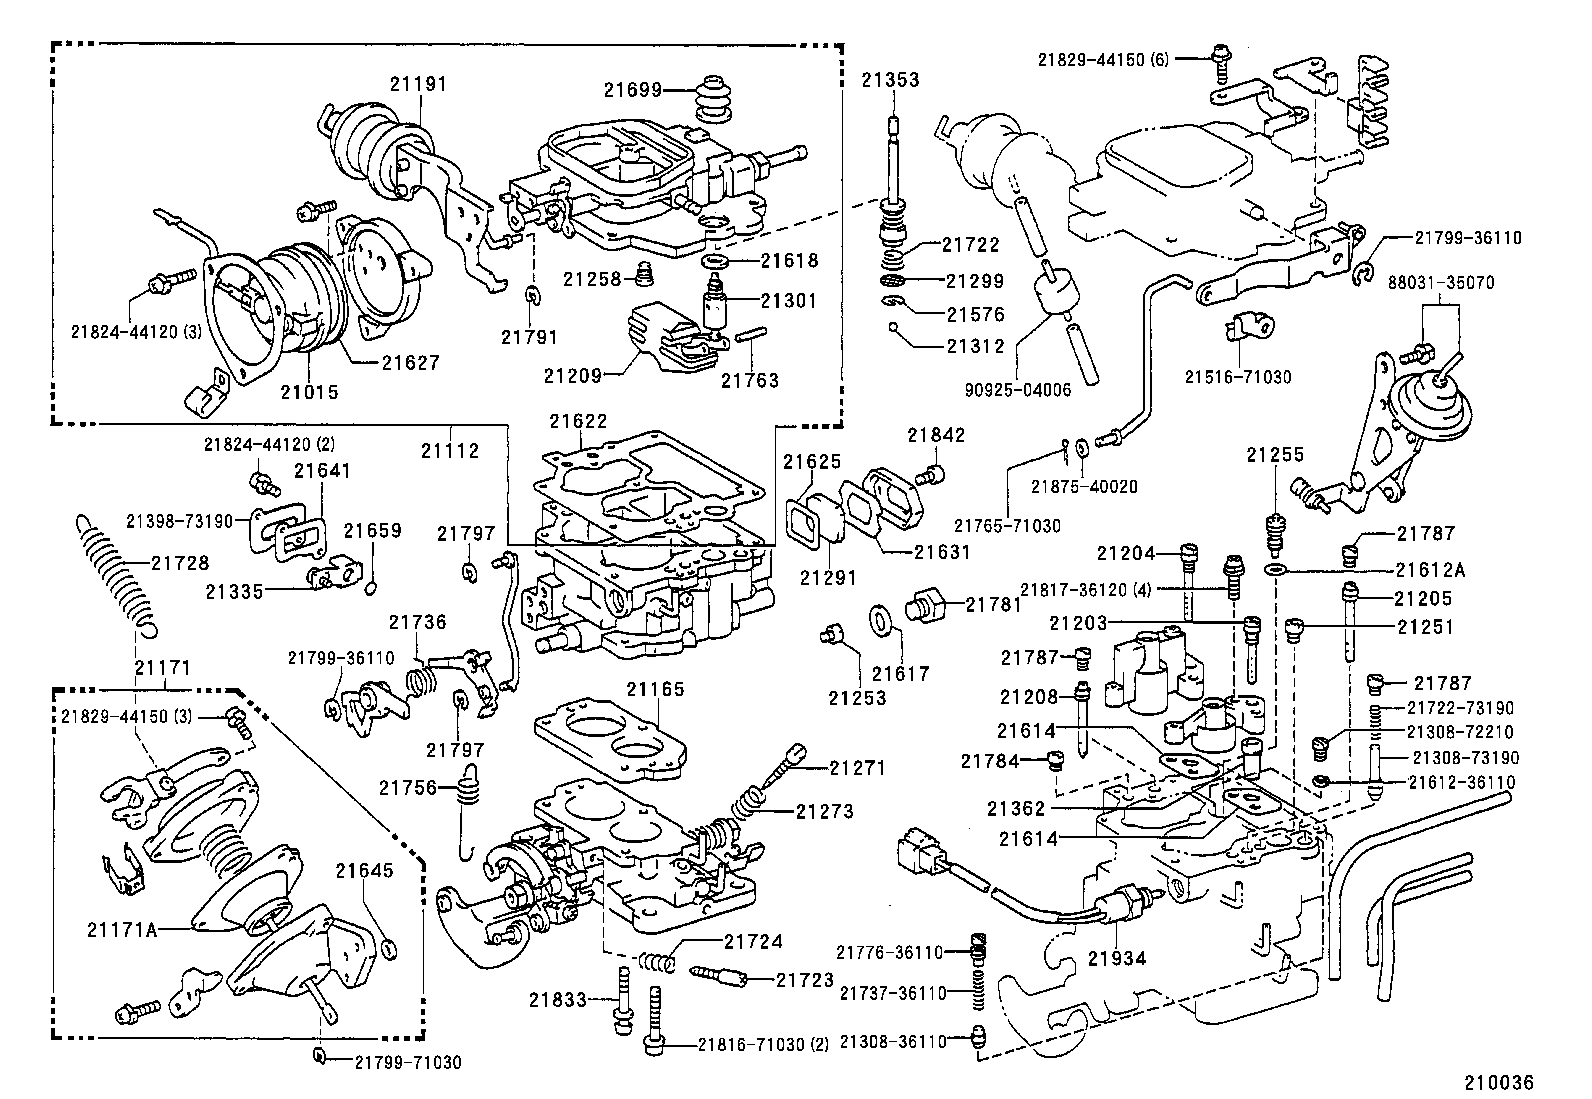 diagram of toyota parts  toyota  auto parts catalog and